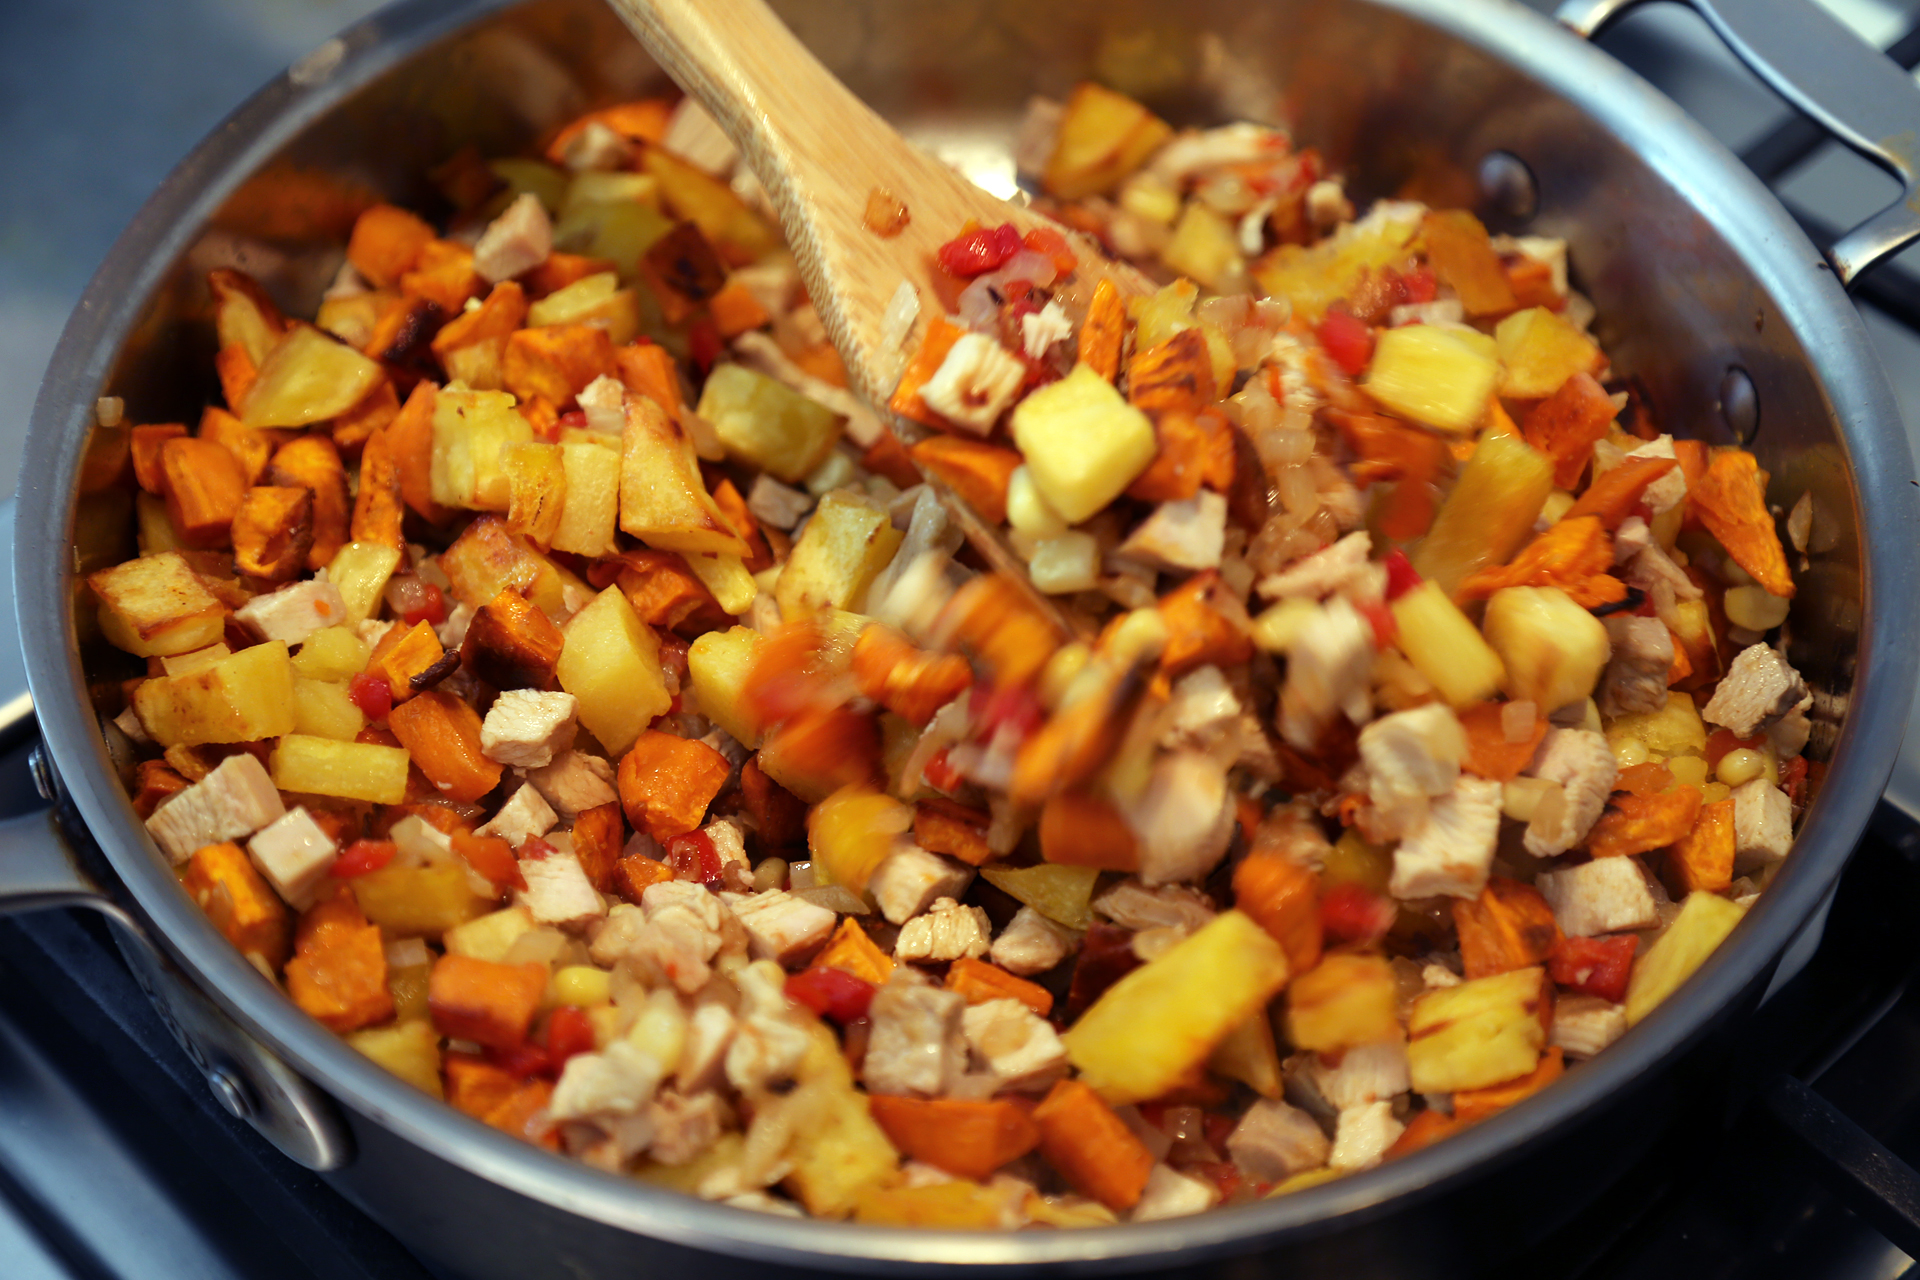 Add the roasted potatoes and stir to combine.